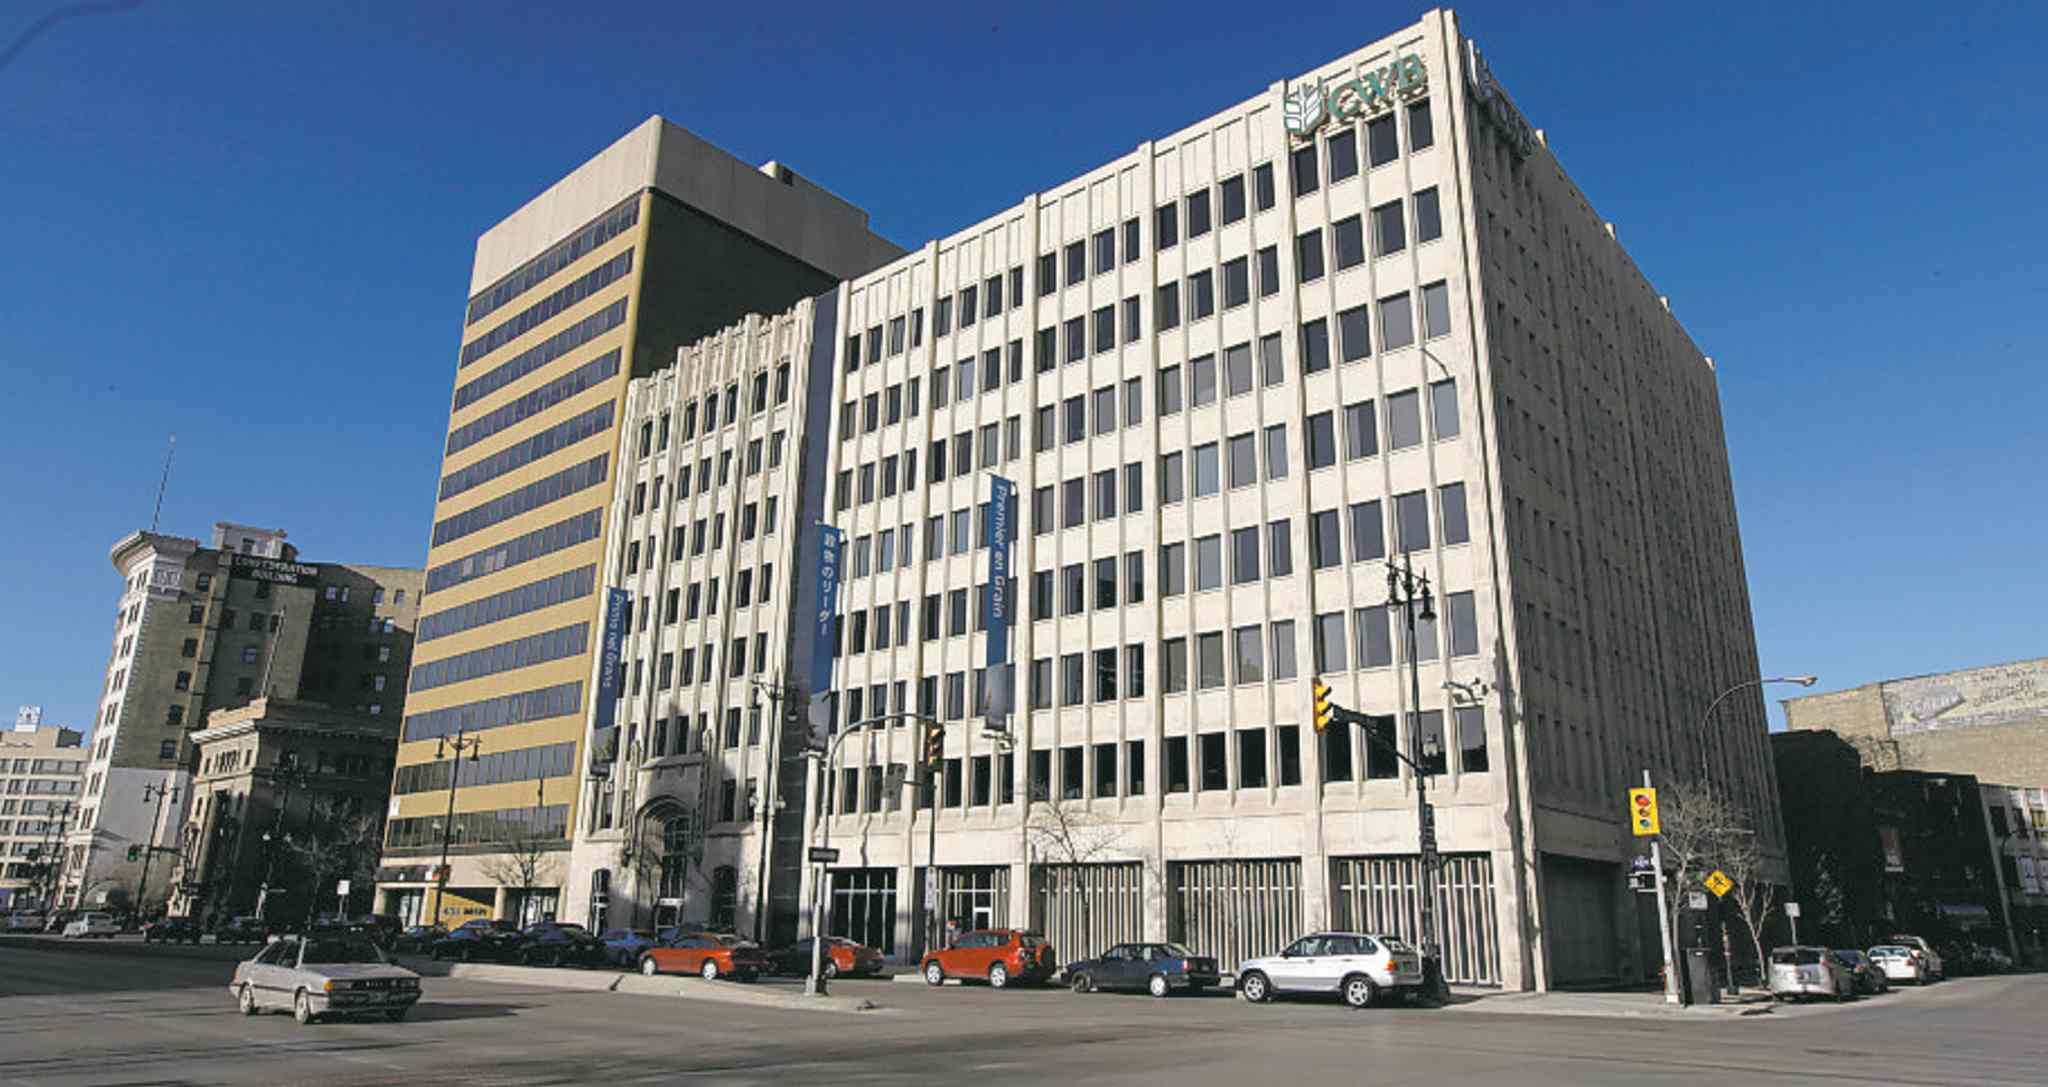 Could the Canadian Wheat Board  building on Main Street be the new home of Manitoba Liquor and Lotteries?